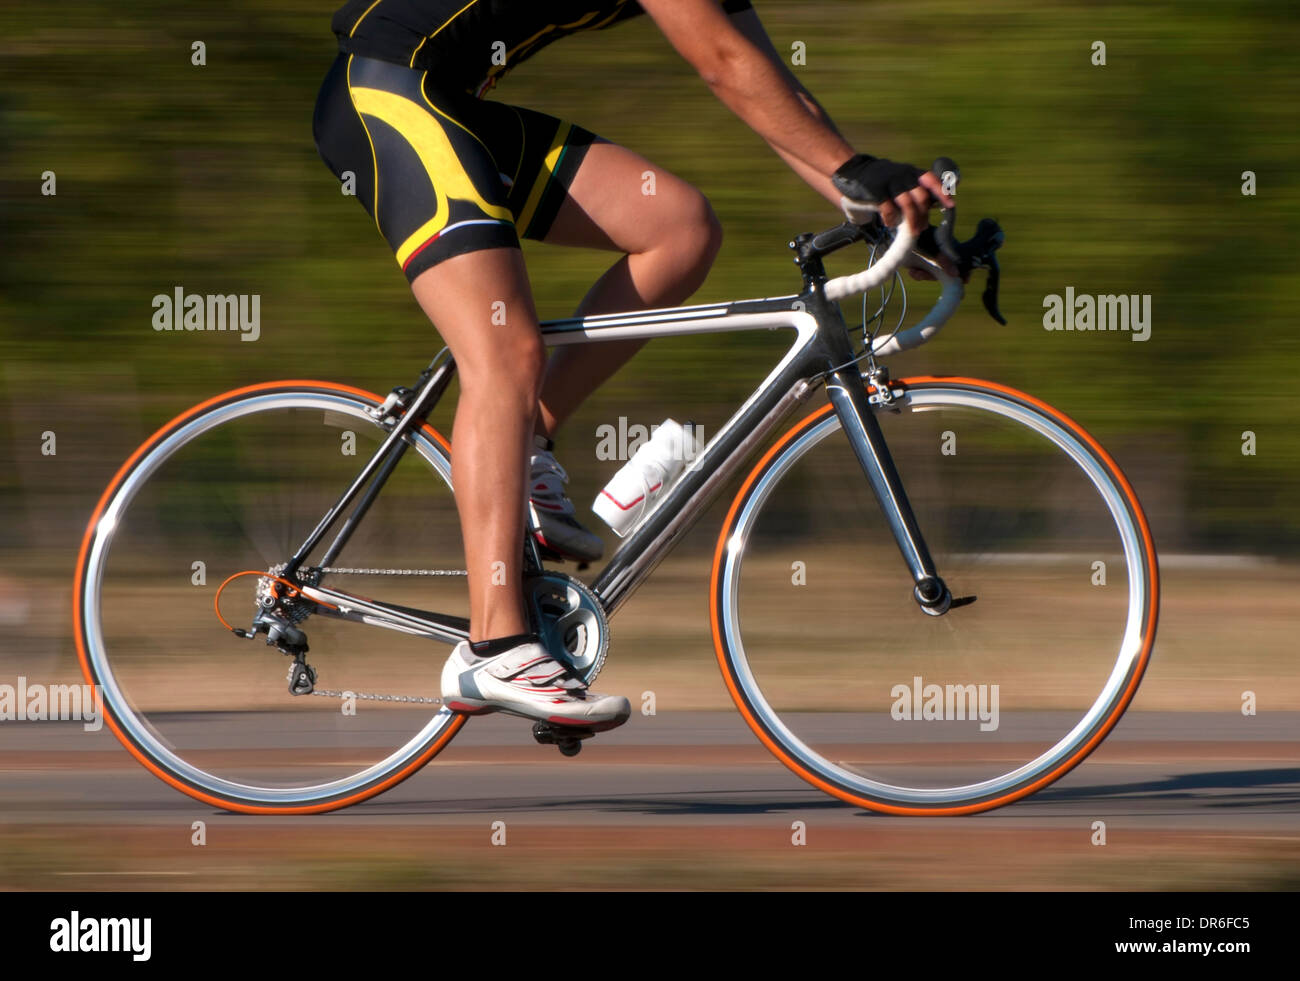 Cycling activity in blurred motion - Stock Image